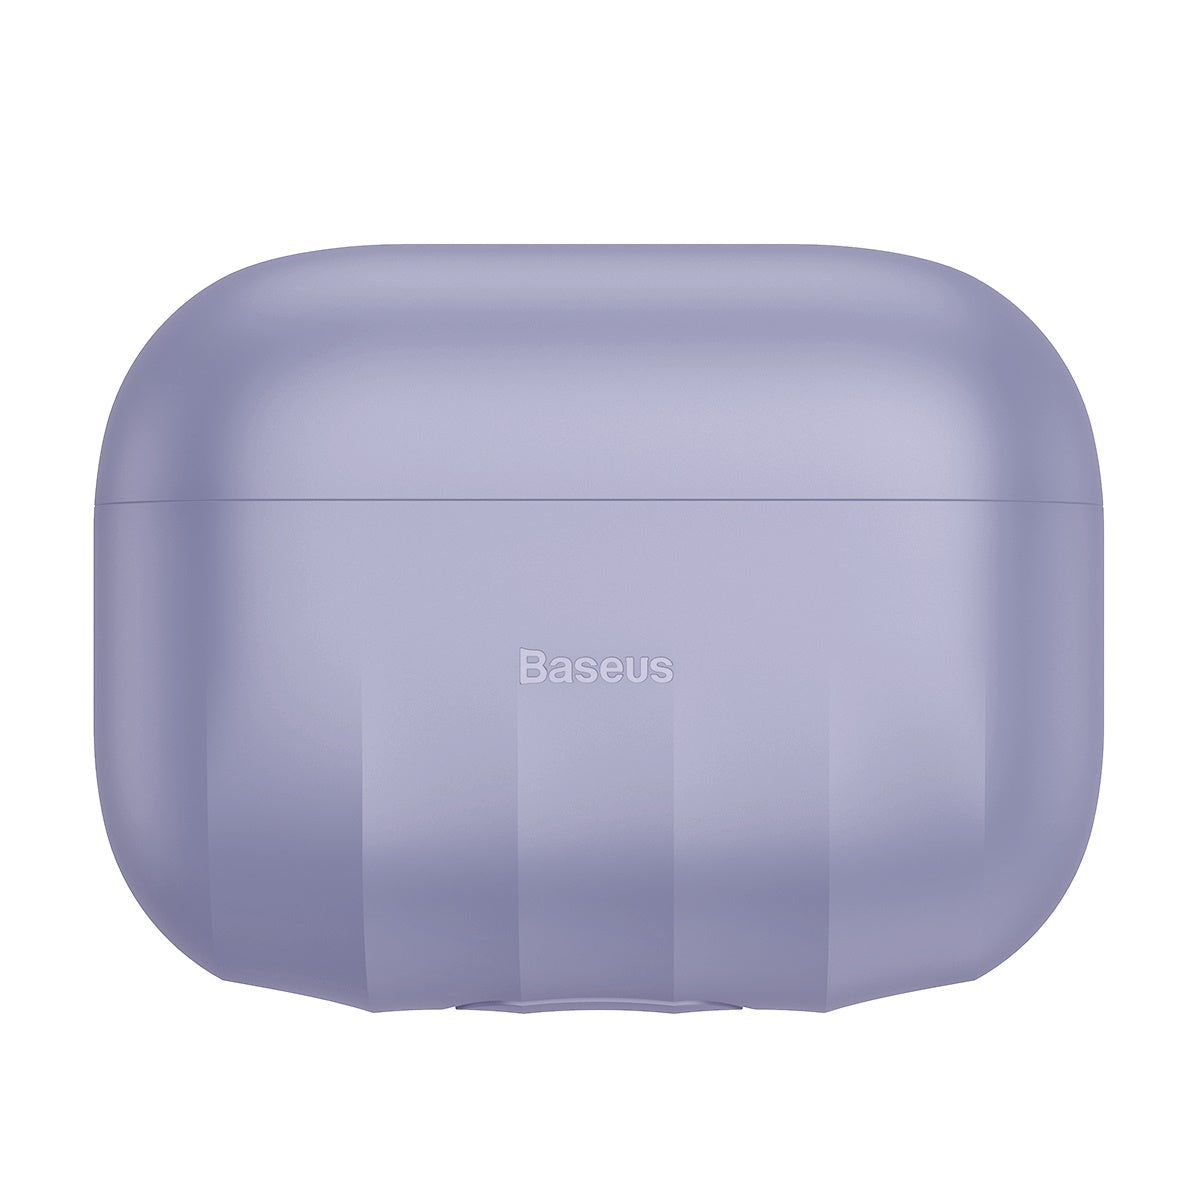 BASEUS Shell Pattern Silica Gel Case for AirPods Pro